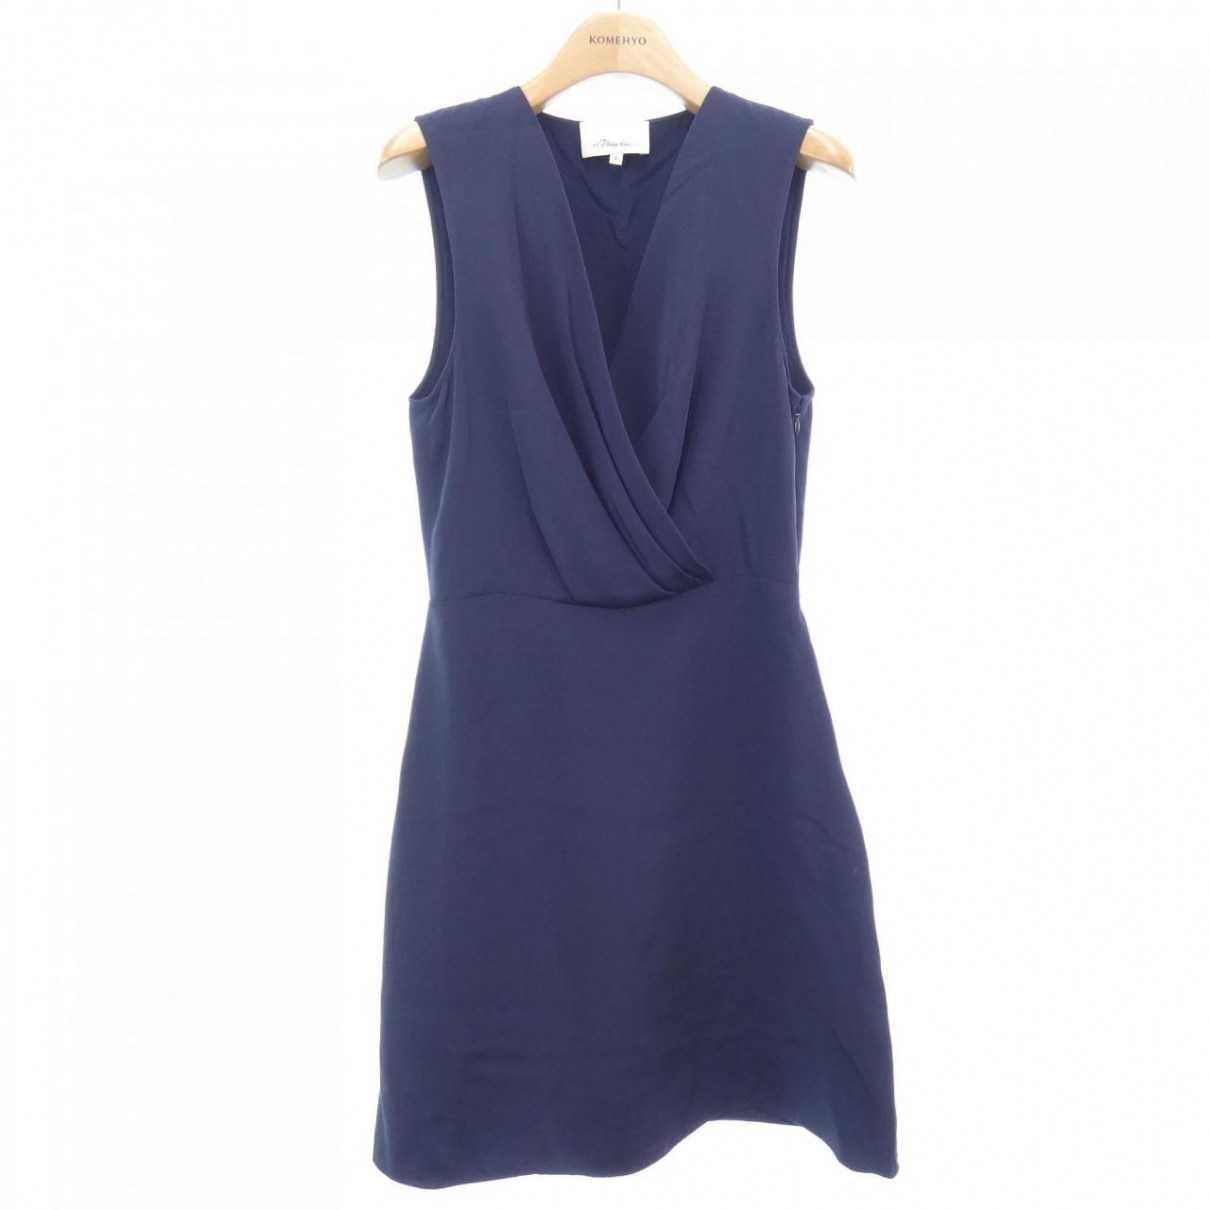 3.1 Phillip Lim \N Blue Silk dress for Women One Size US